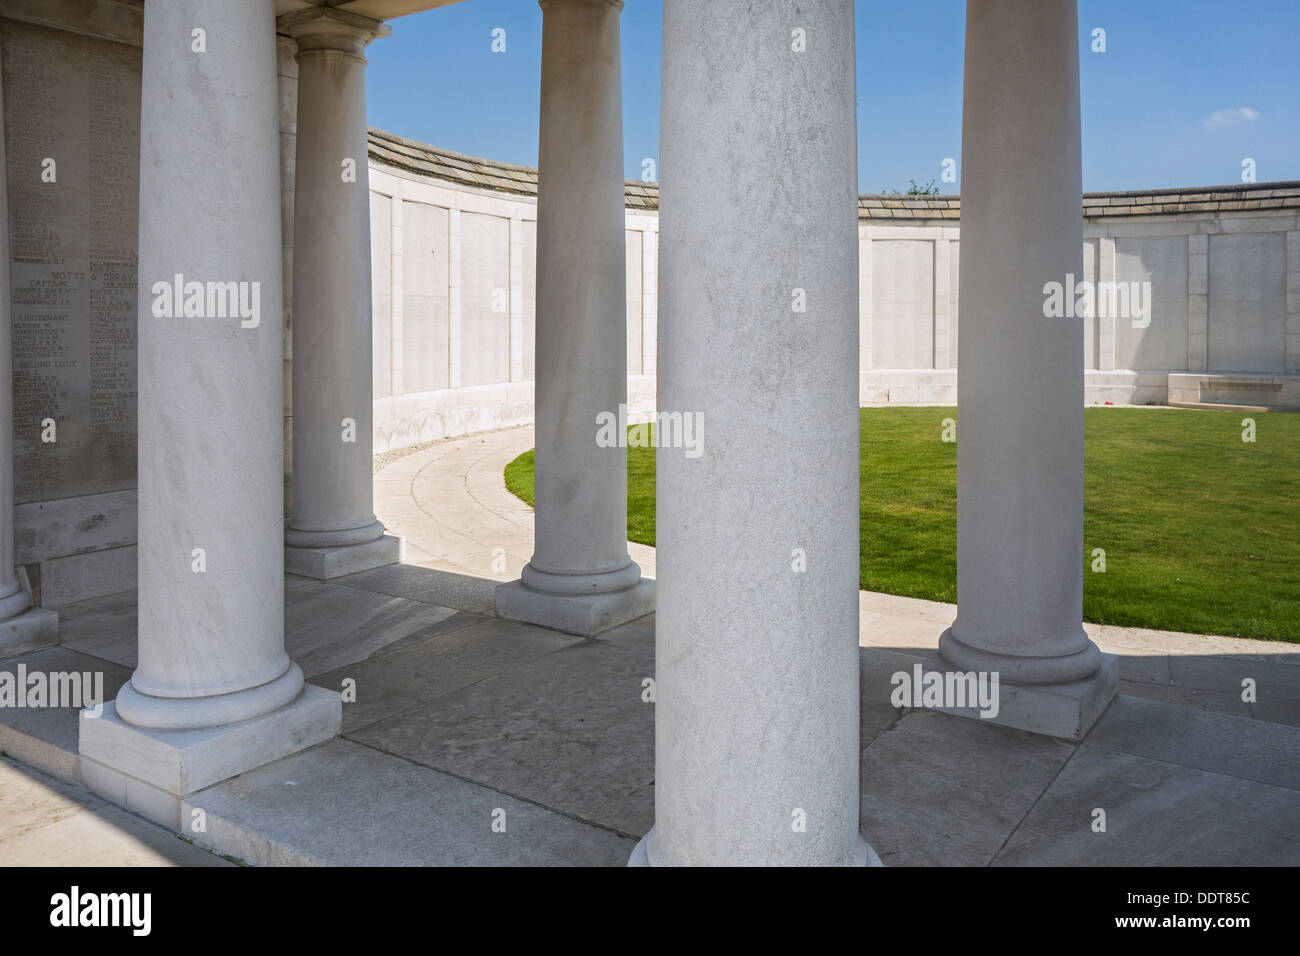 WWI Memorial to the Missing at the Tyne Cot Cemetery for First World War One British soldiers, Zonnebeke, West Flanders, Belgium - Stock Image